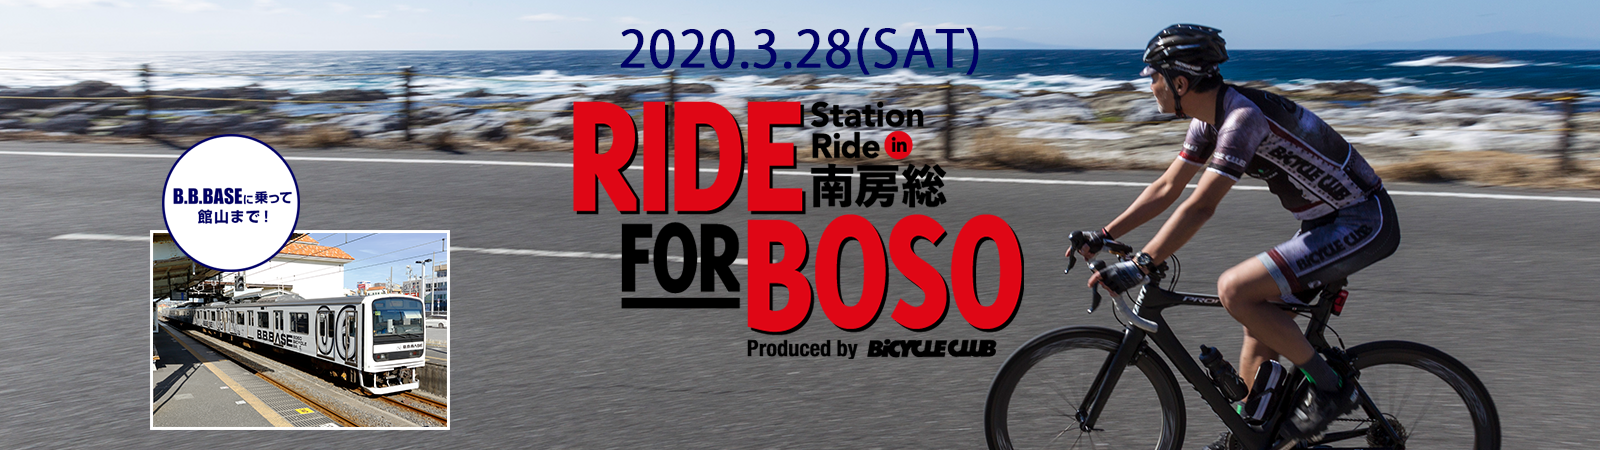 RIDE FOR BOSO Station Ride in 南房総